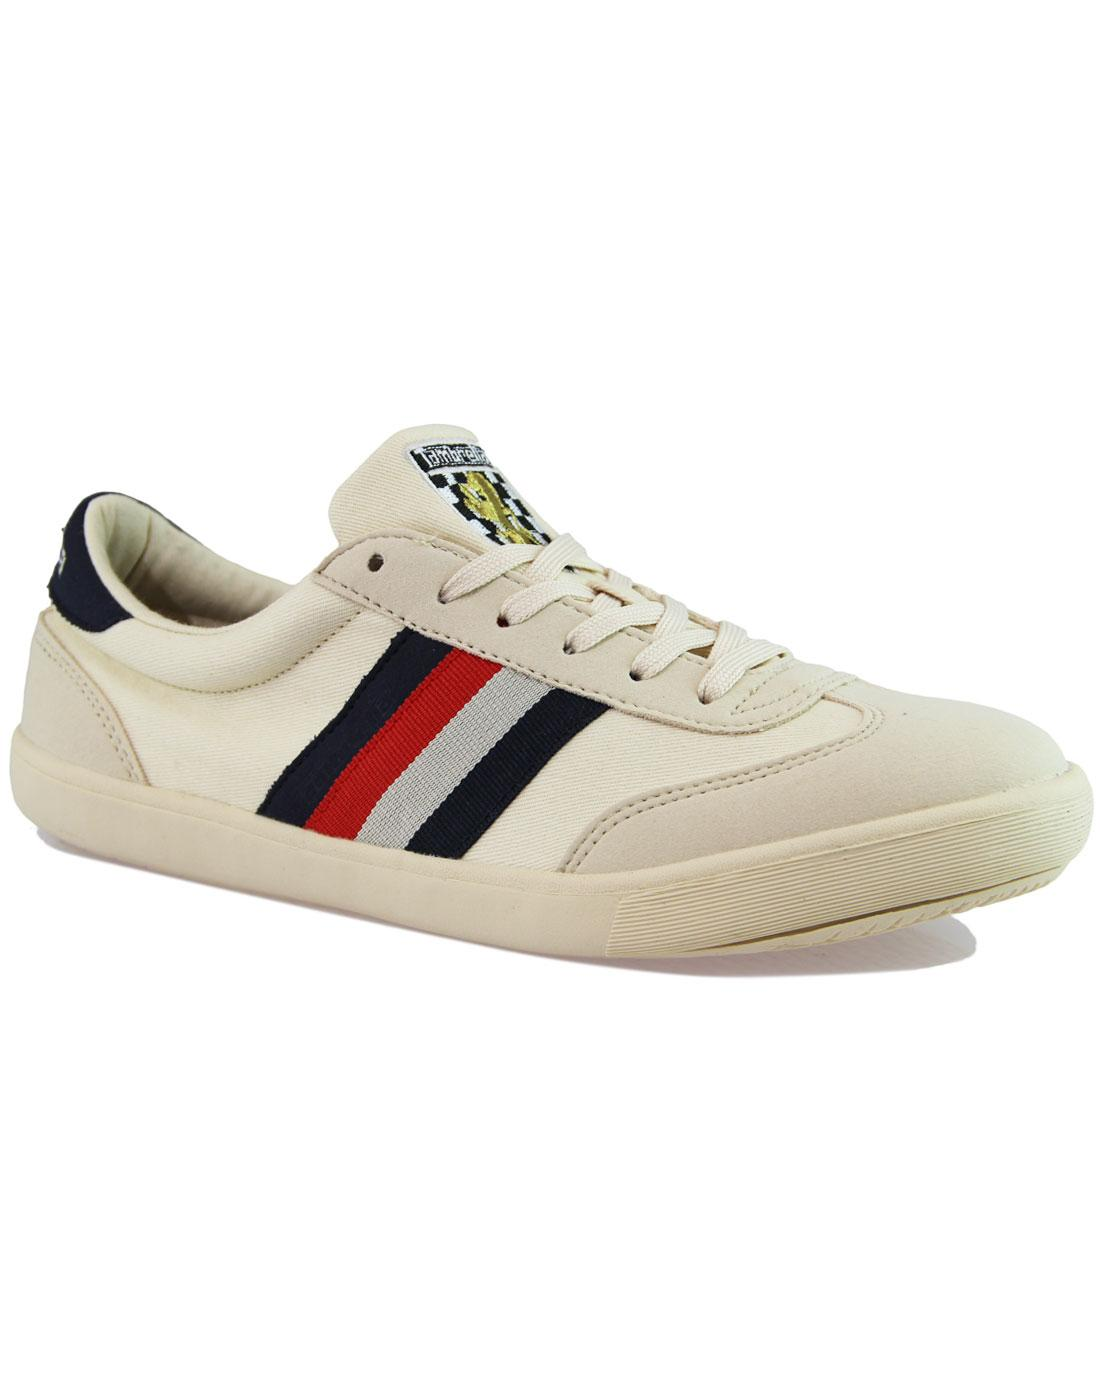 Vulcan LAMBRETTA Retro Stripe Trainers OFF WHITE